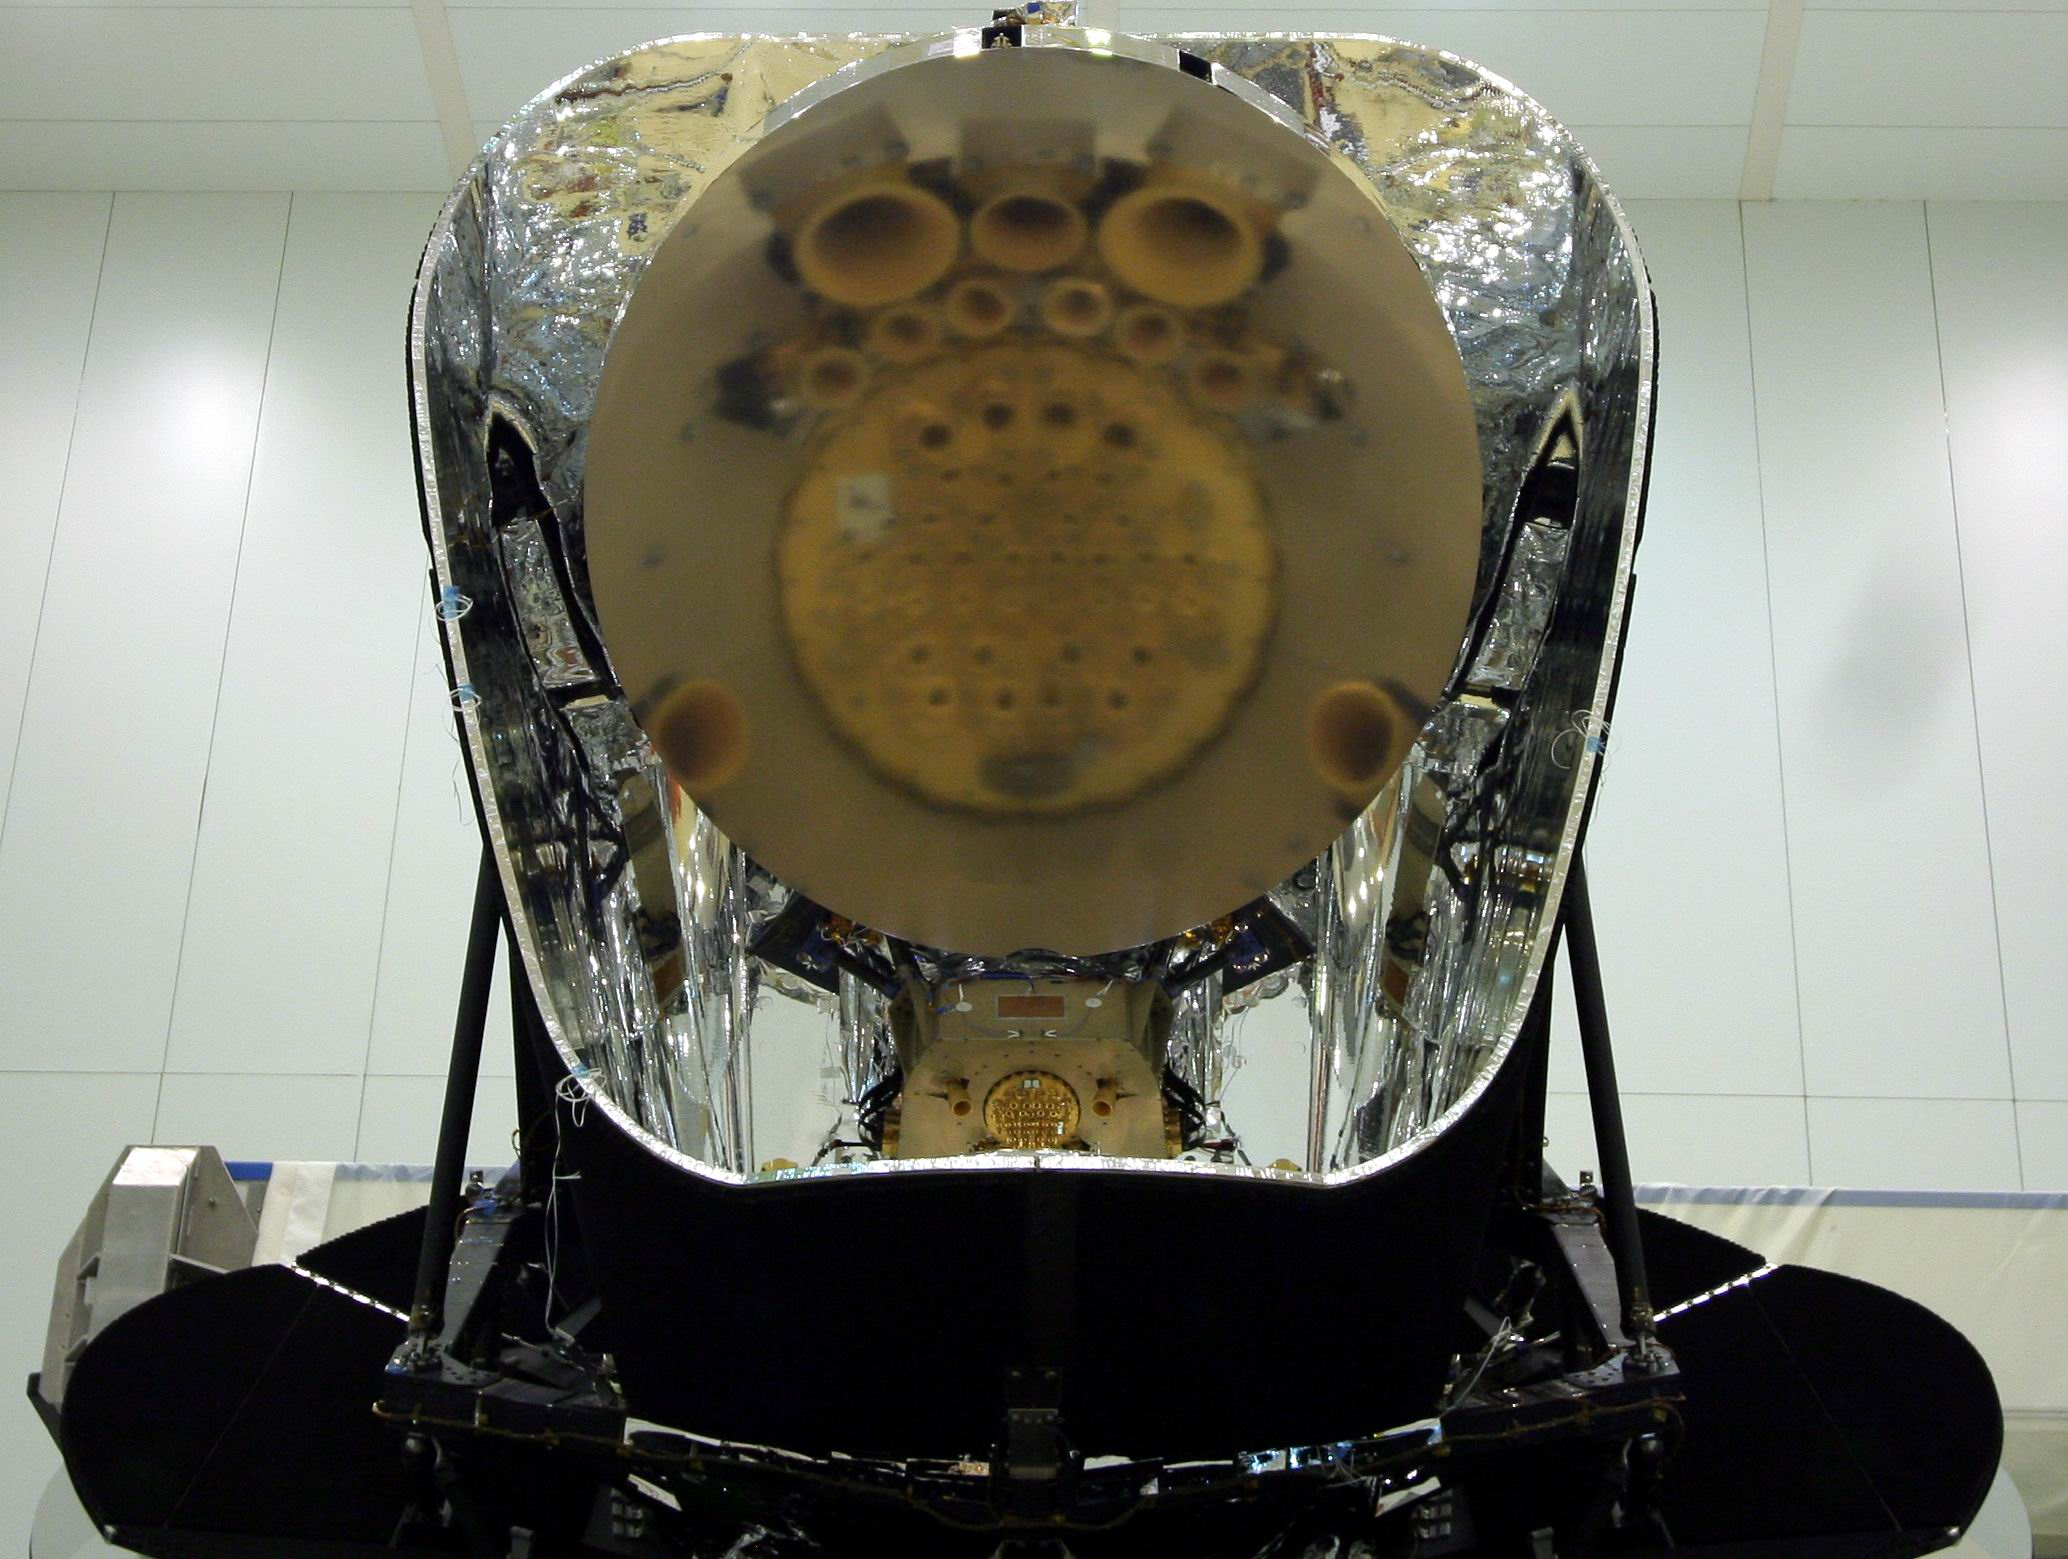 Planck Focal Plane Unit reflected in its primary mirror